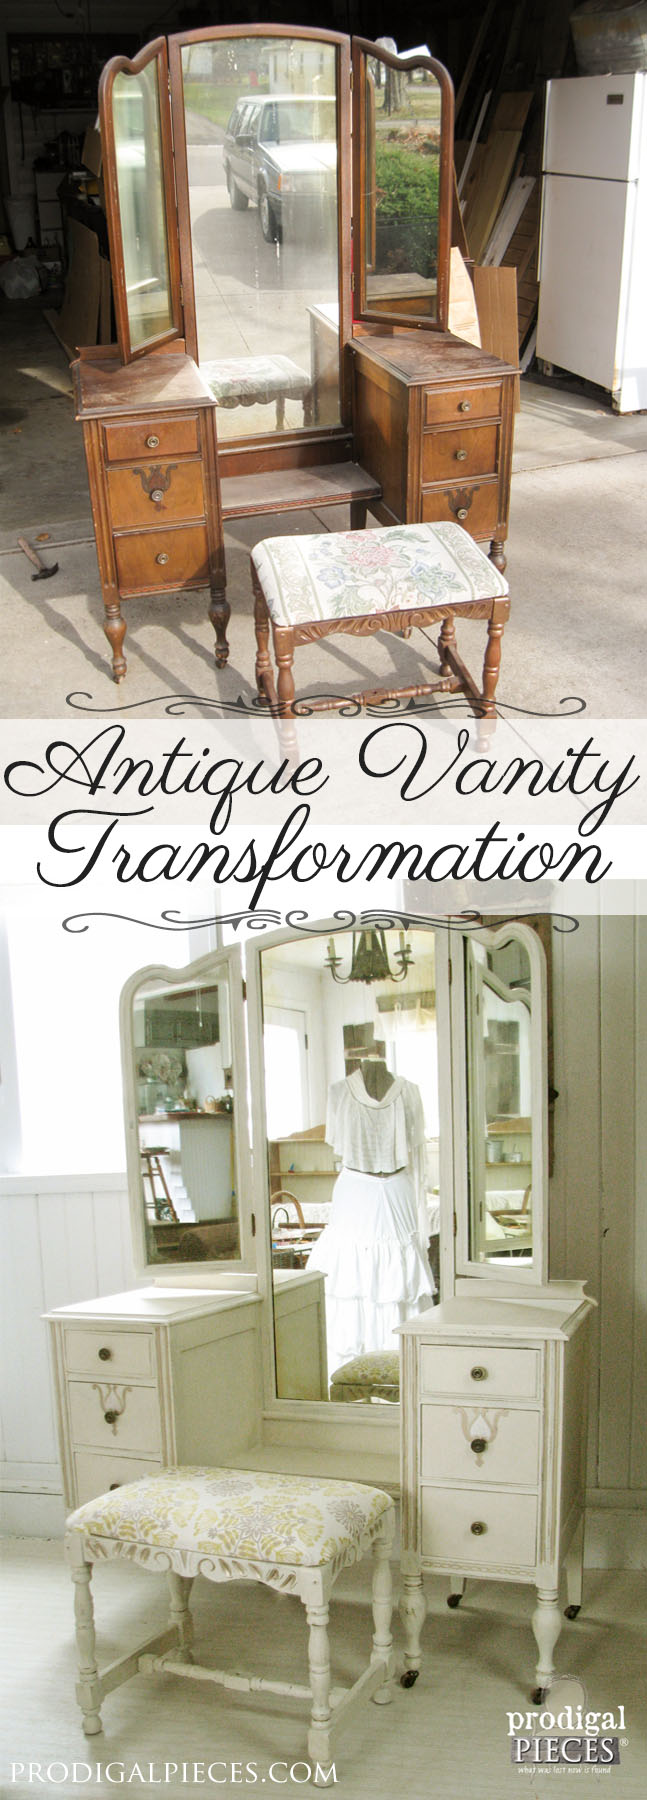 An Antique Trifold Vanity Transformation by Prodigal Pieces | prodigalpieces.com